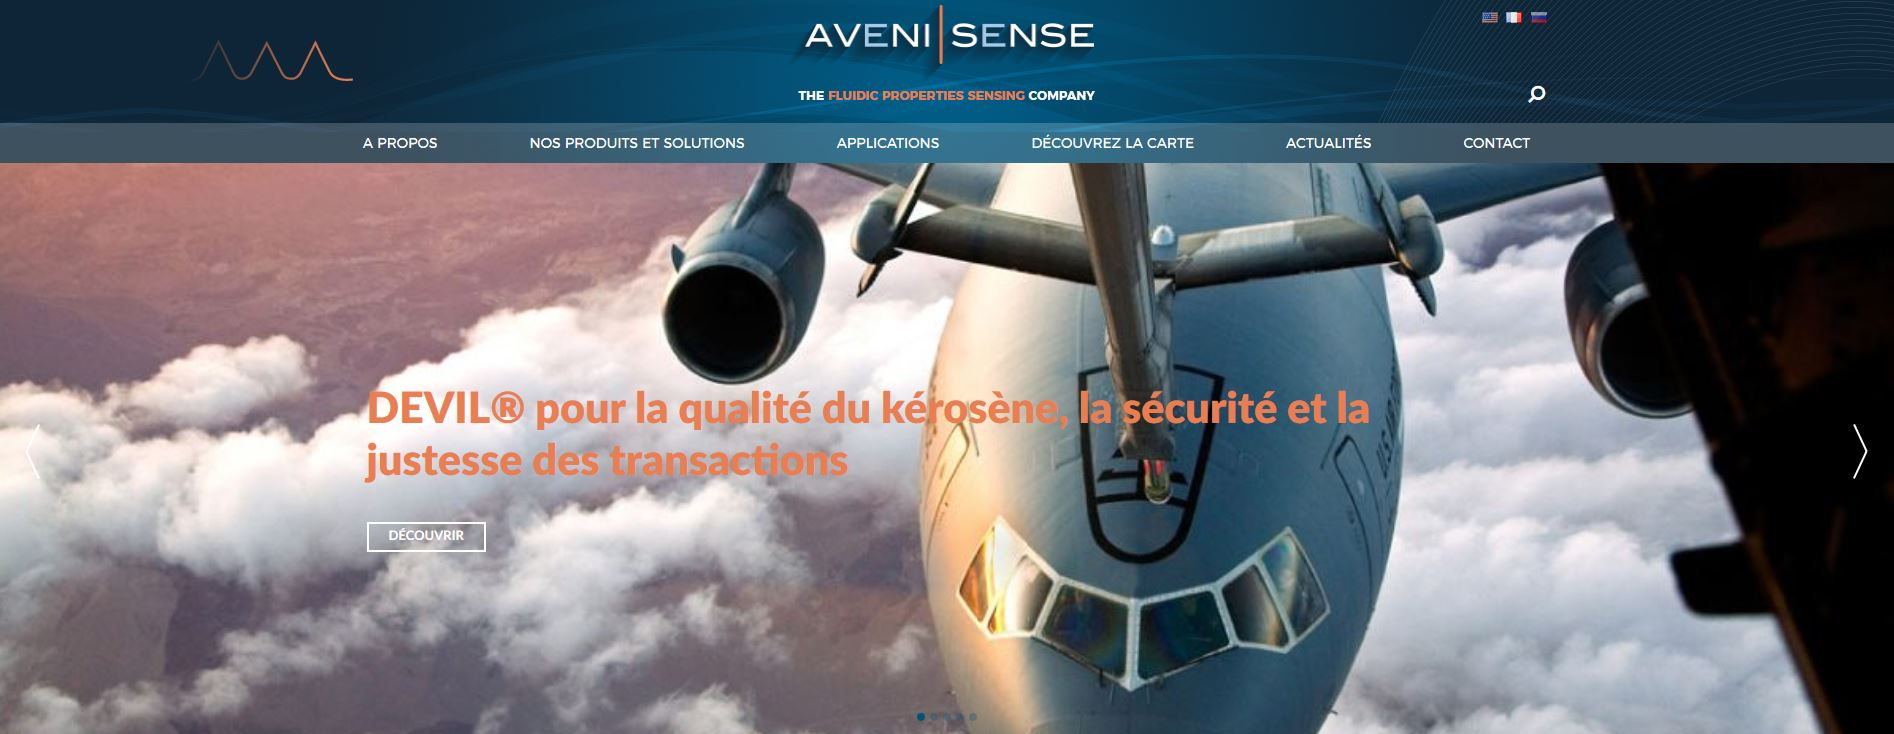 Avenisense (instrumentation scientifique)